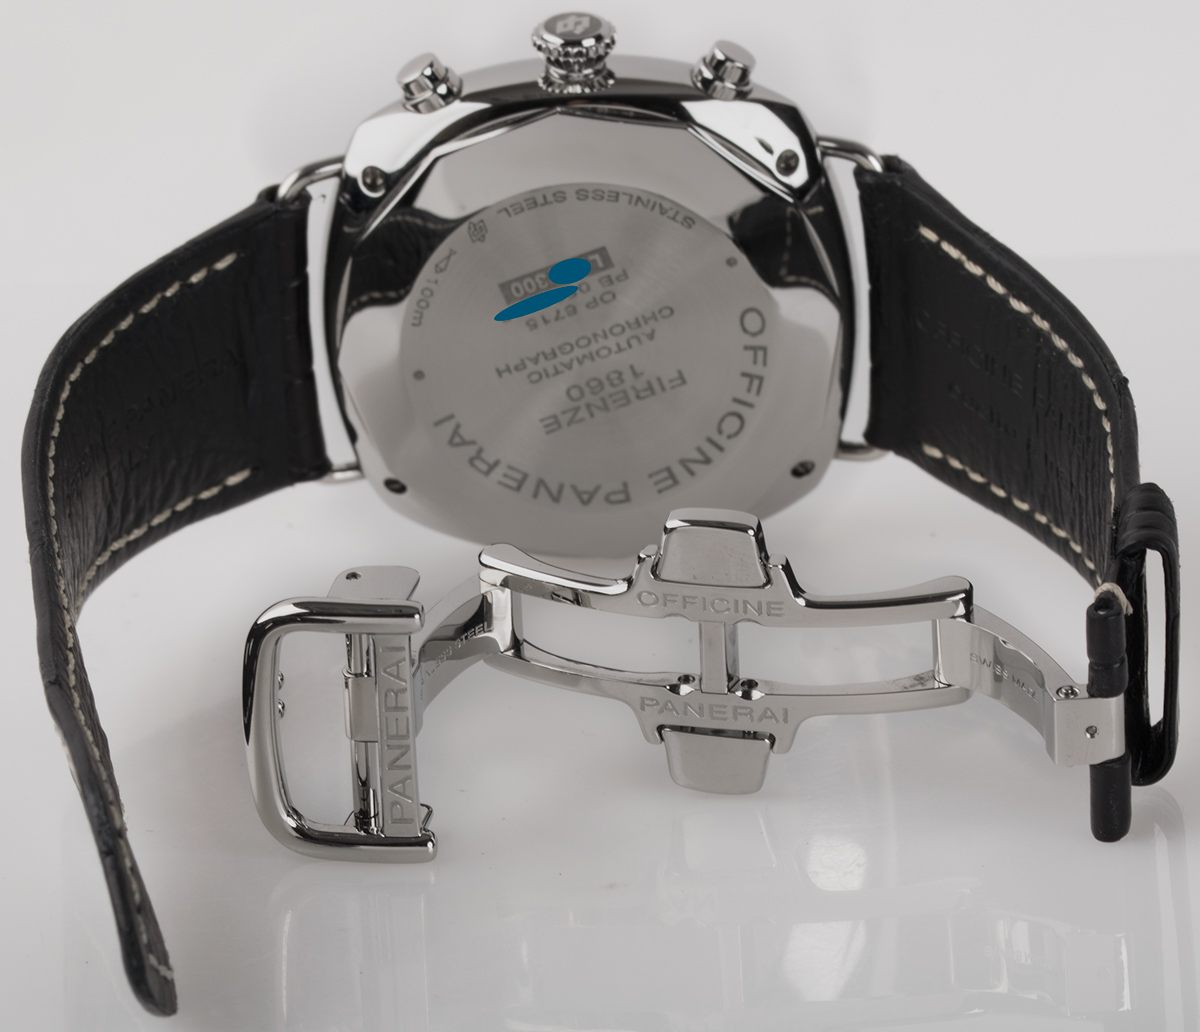 Rear shot of Radiomir Chronograph with black alligator strap